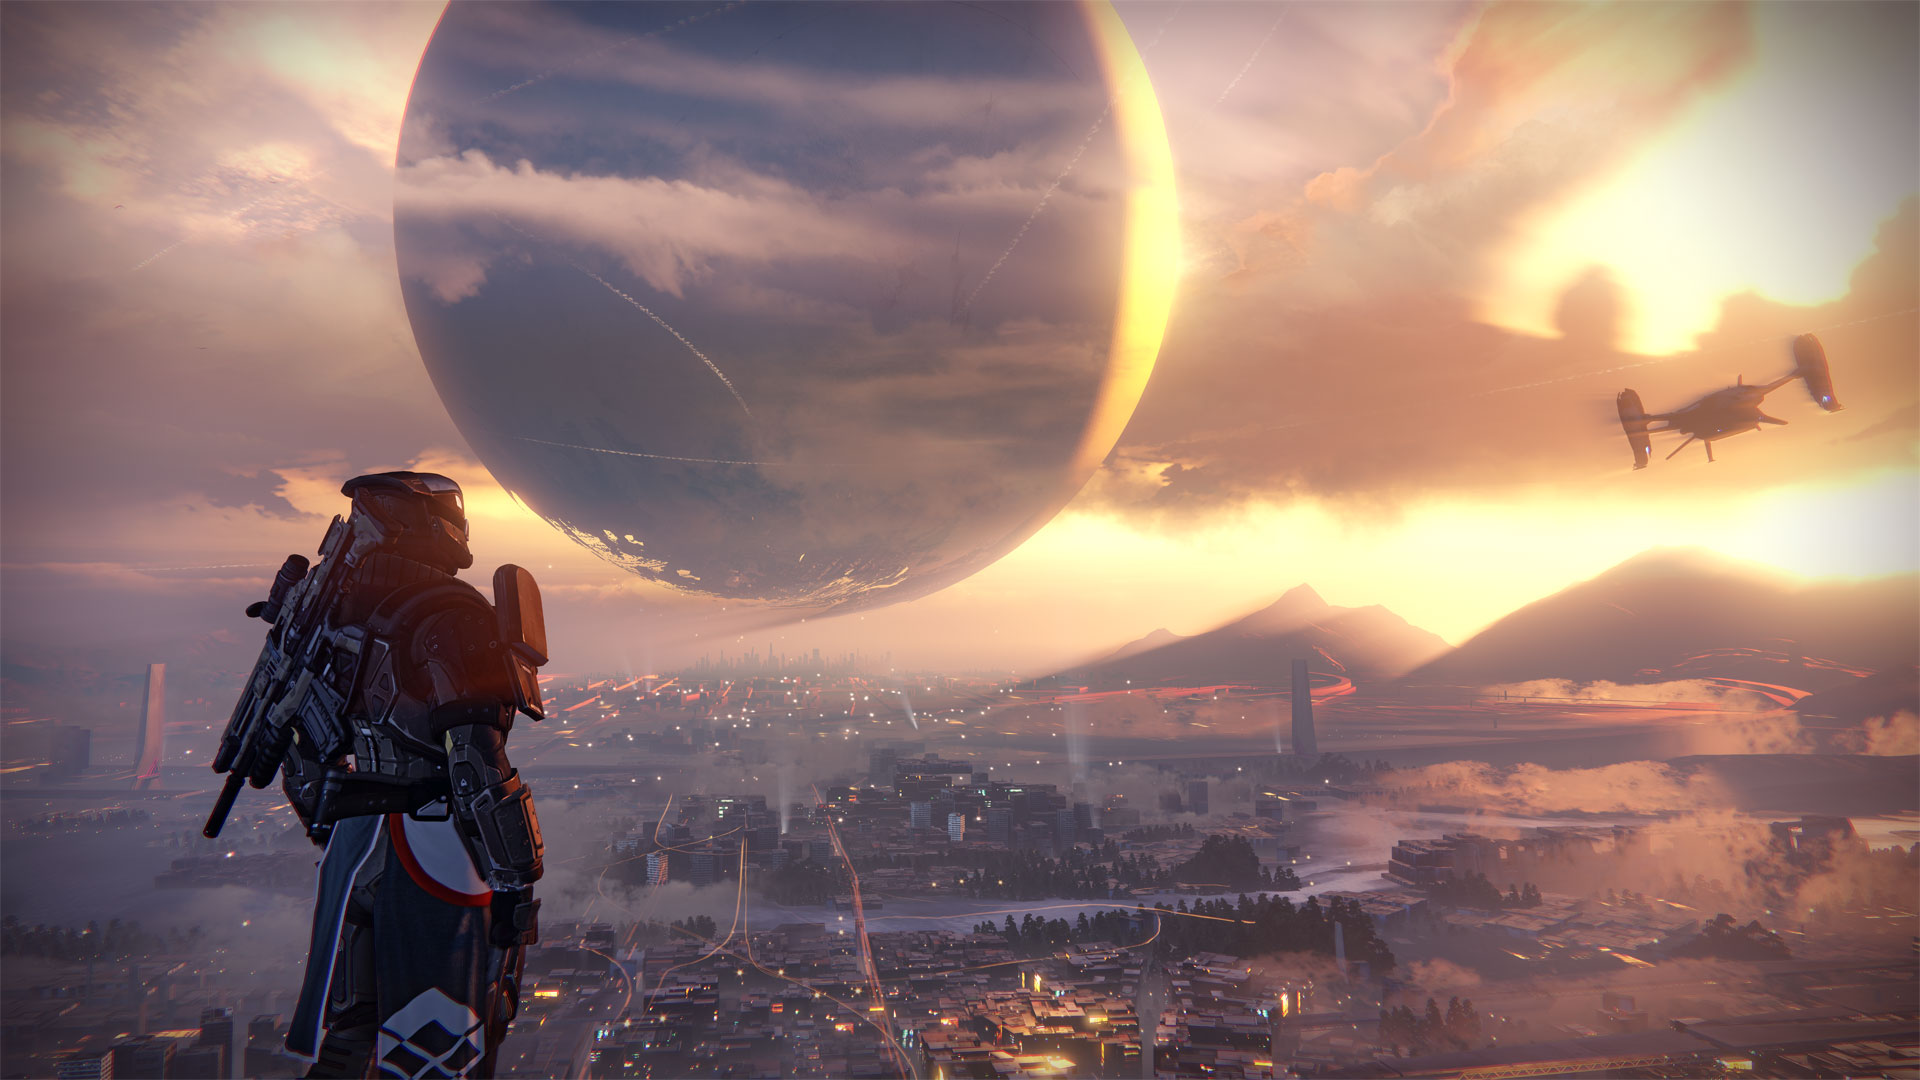 Penny Arcade wrote a better story for Destiny than Bungie did